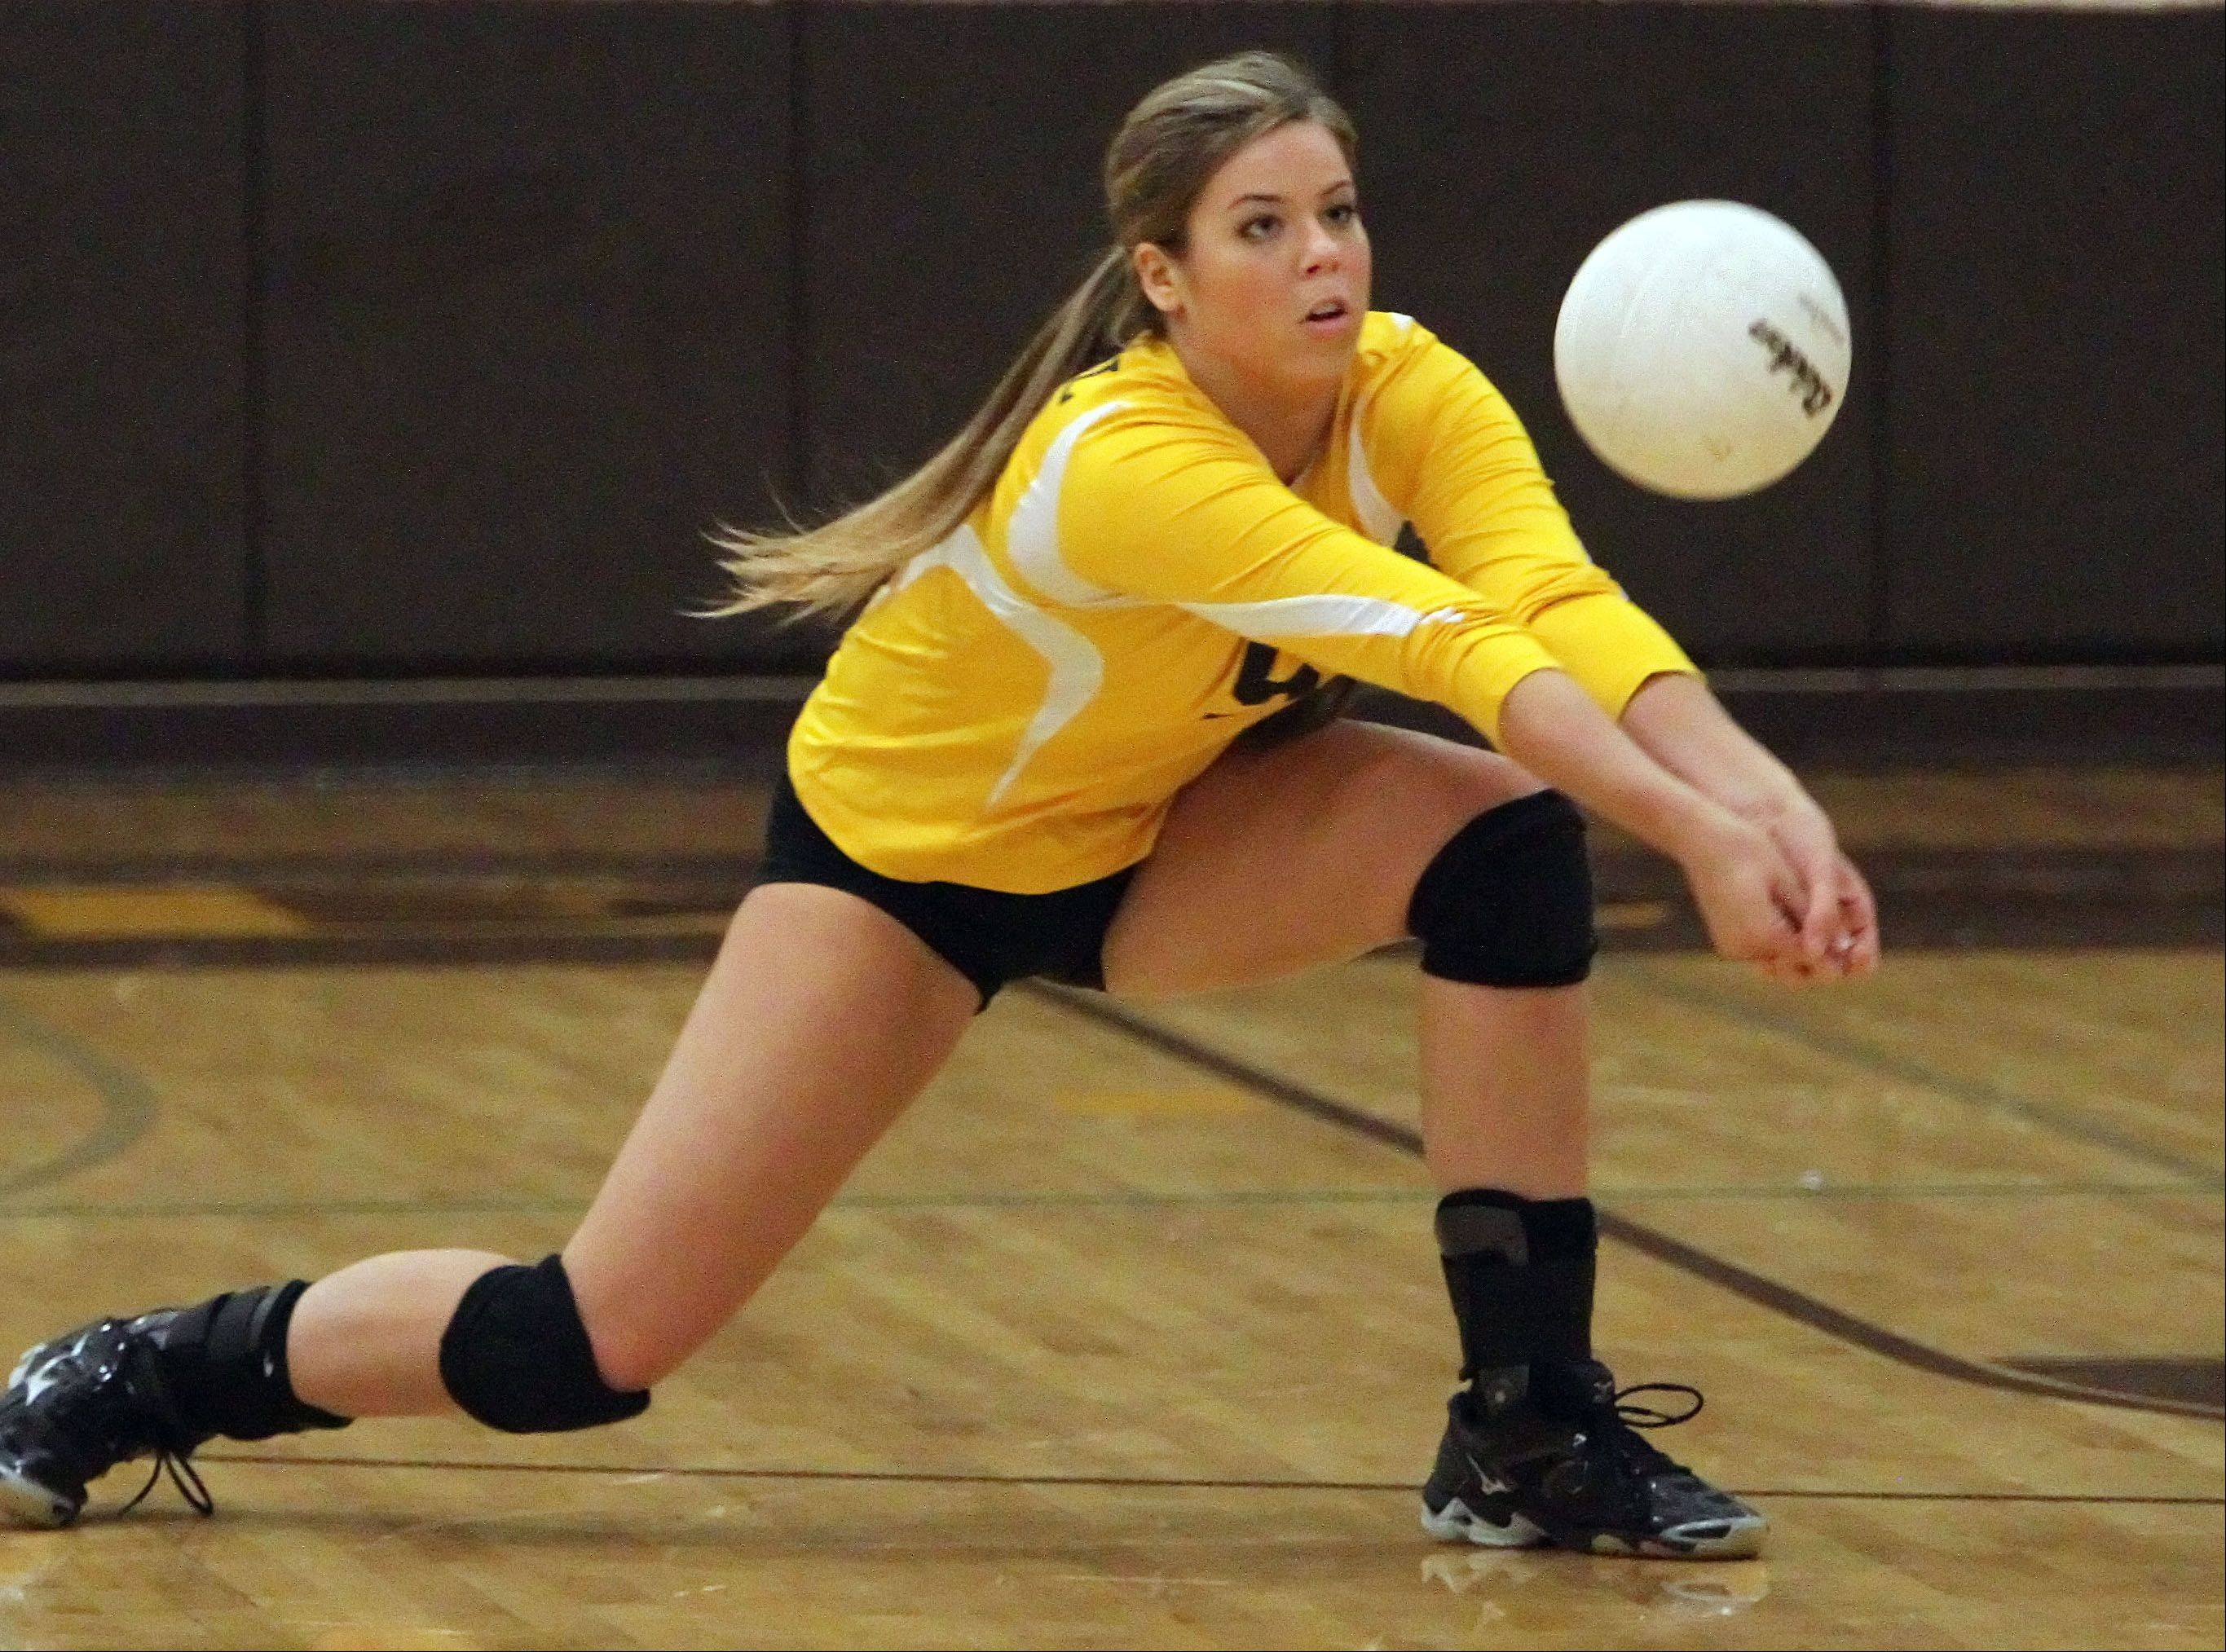 Carmel's Allie Wayland digs out a serve against Providence Catholic on Tuesday in Mundelein.